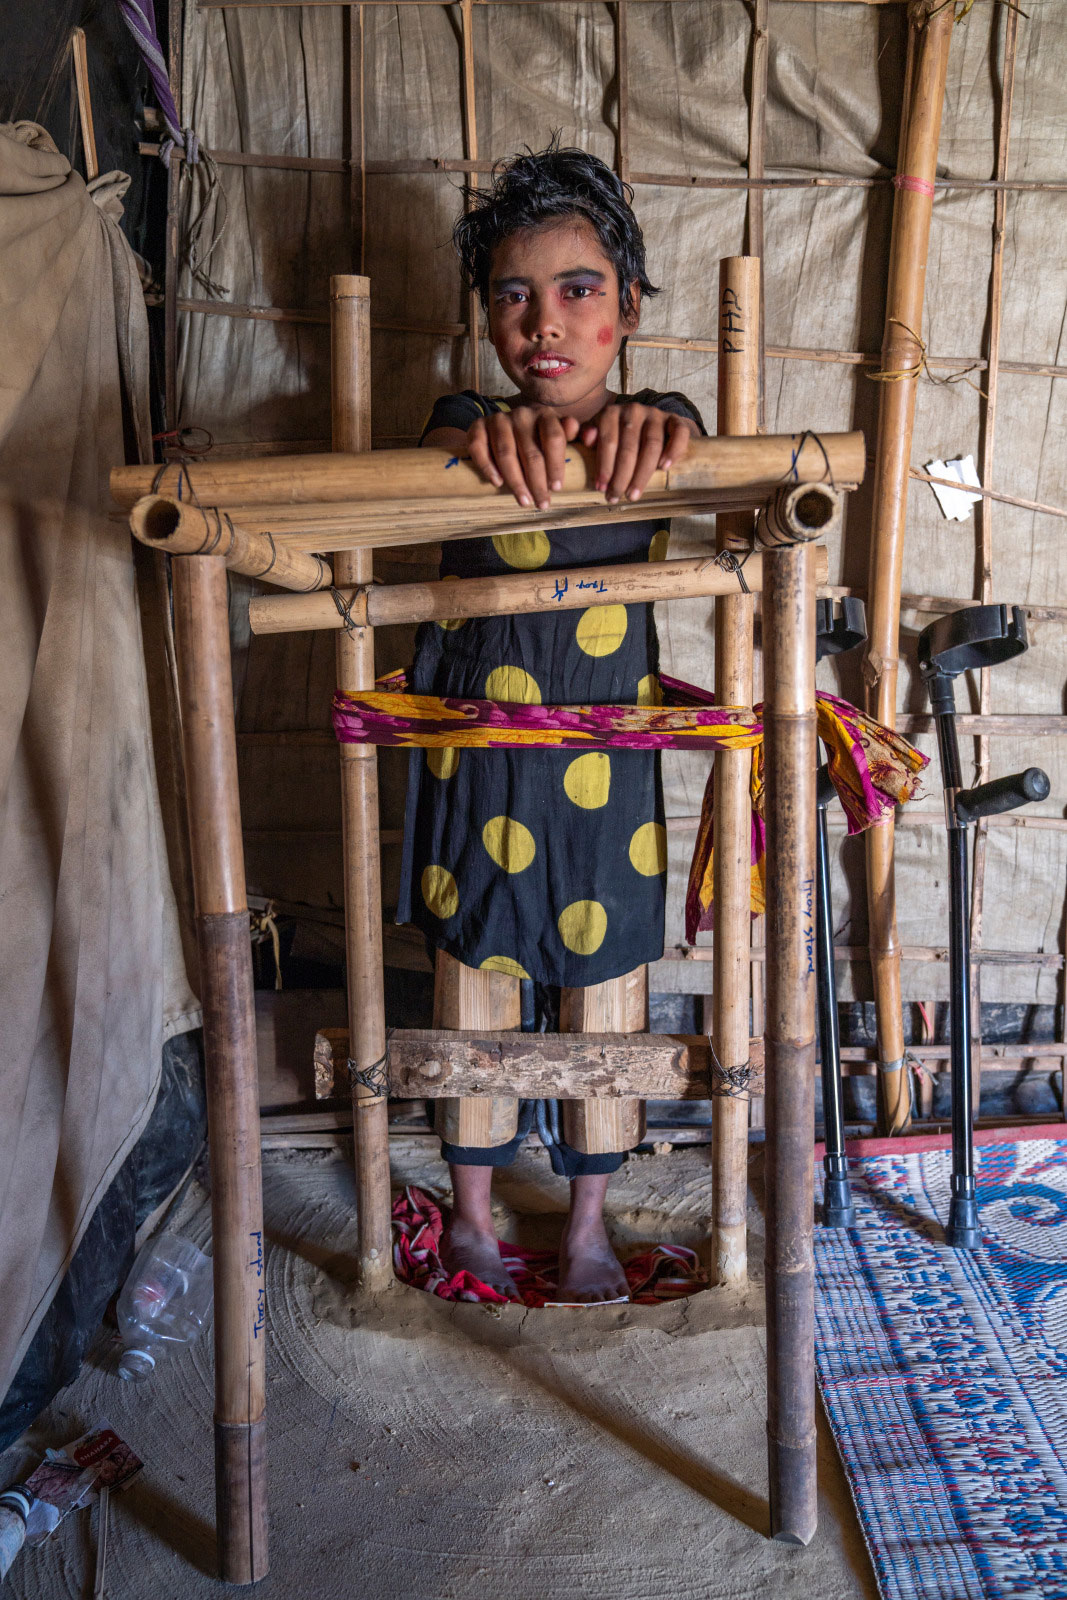 c_Abir-Abdullah_HI__Samira_-10_-who-has-cerebral-palsy_-stands-with-support-from-a-bamboo-frame-build-by-an-HI-physical-therapist.jpg